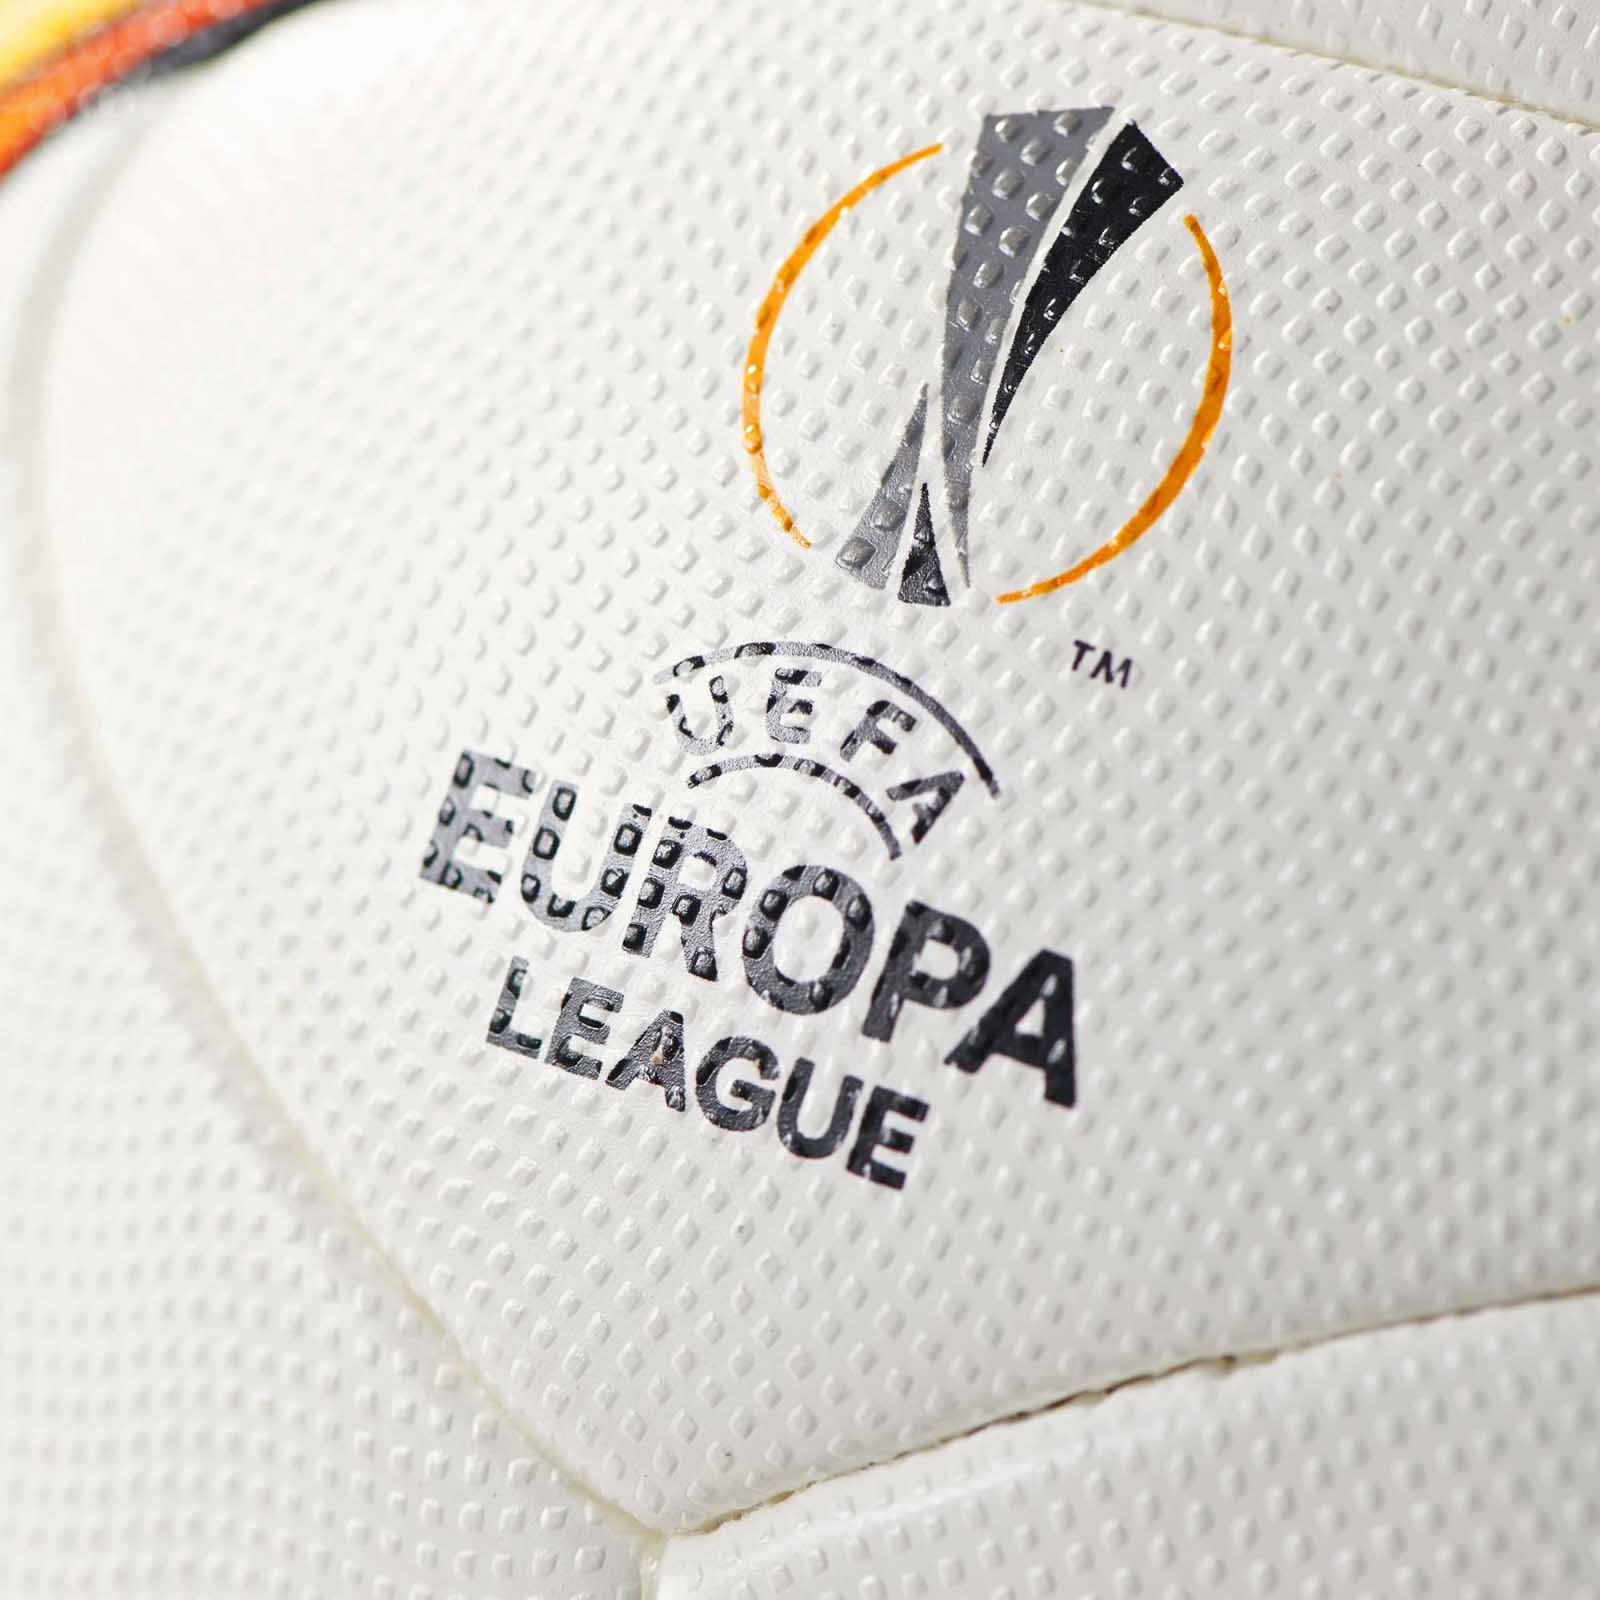 Europa League: Francoforte-Inter Rojadirecta Napoli-Salisburgo Streaming, dove vederle in Diretta TV.